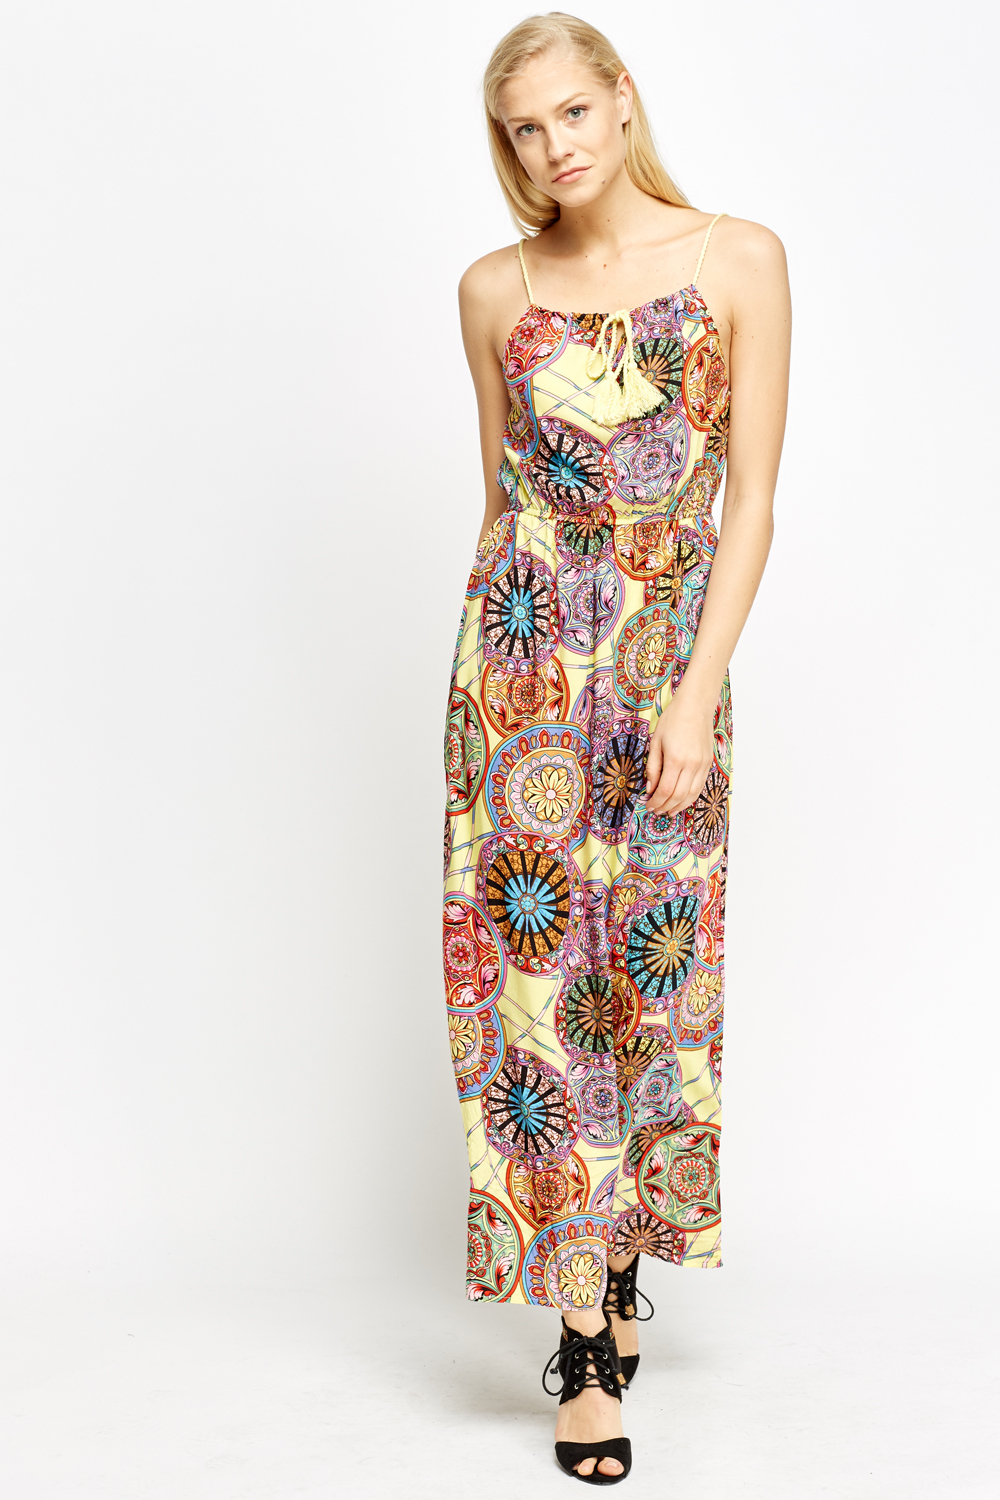 Kaleidoscope Print Maxi Dress Just 163 5